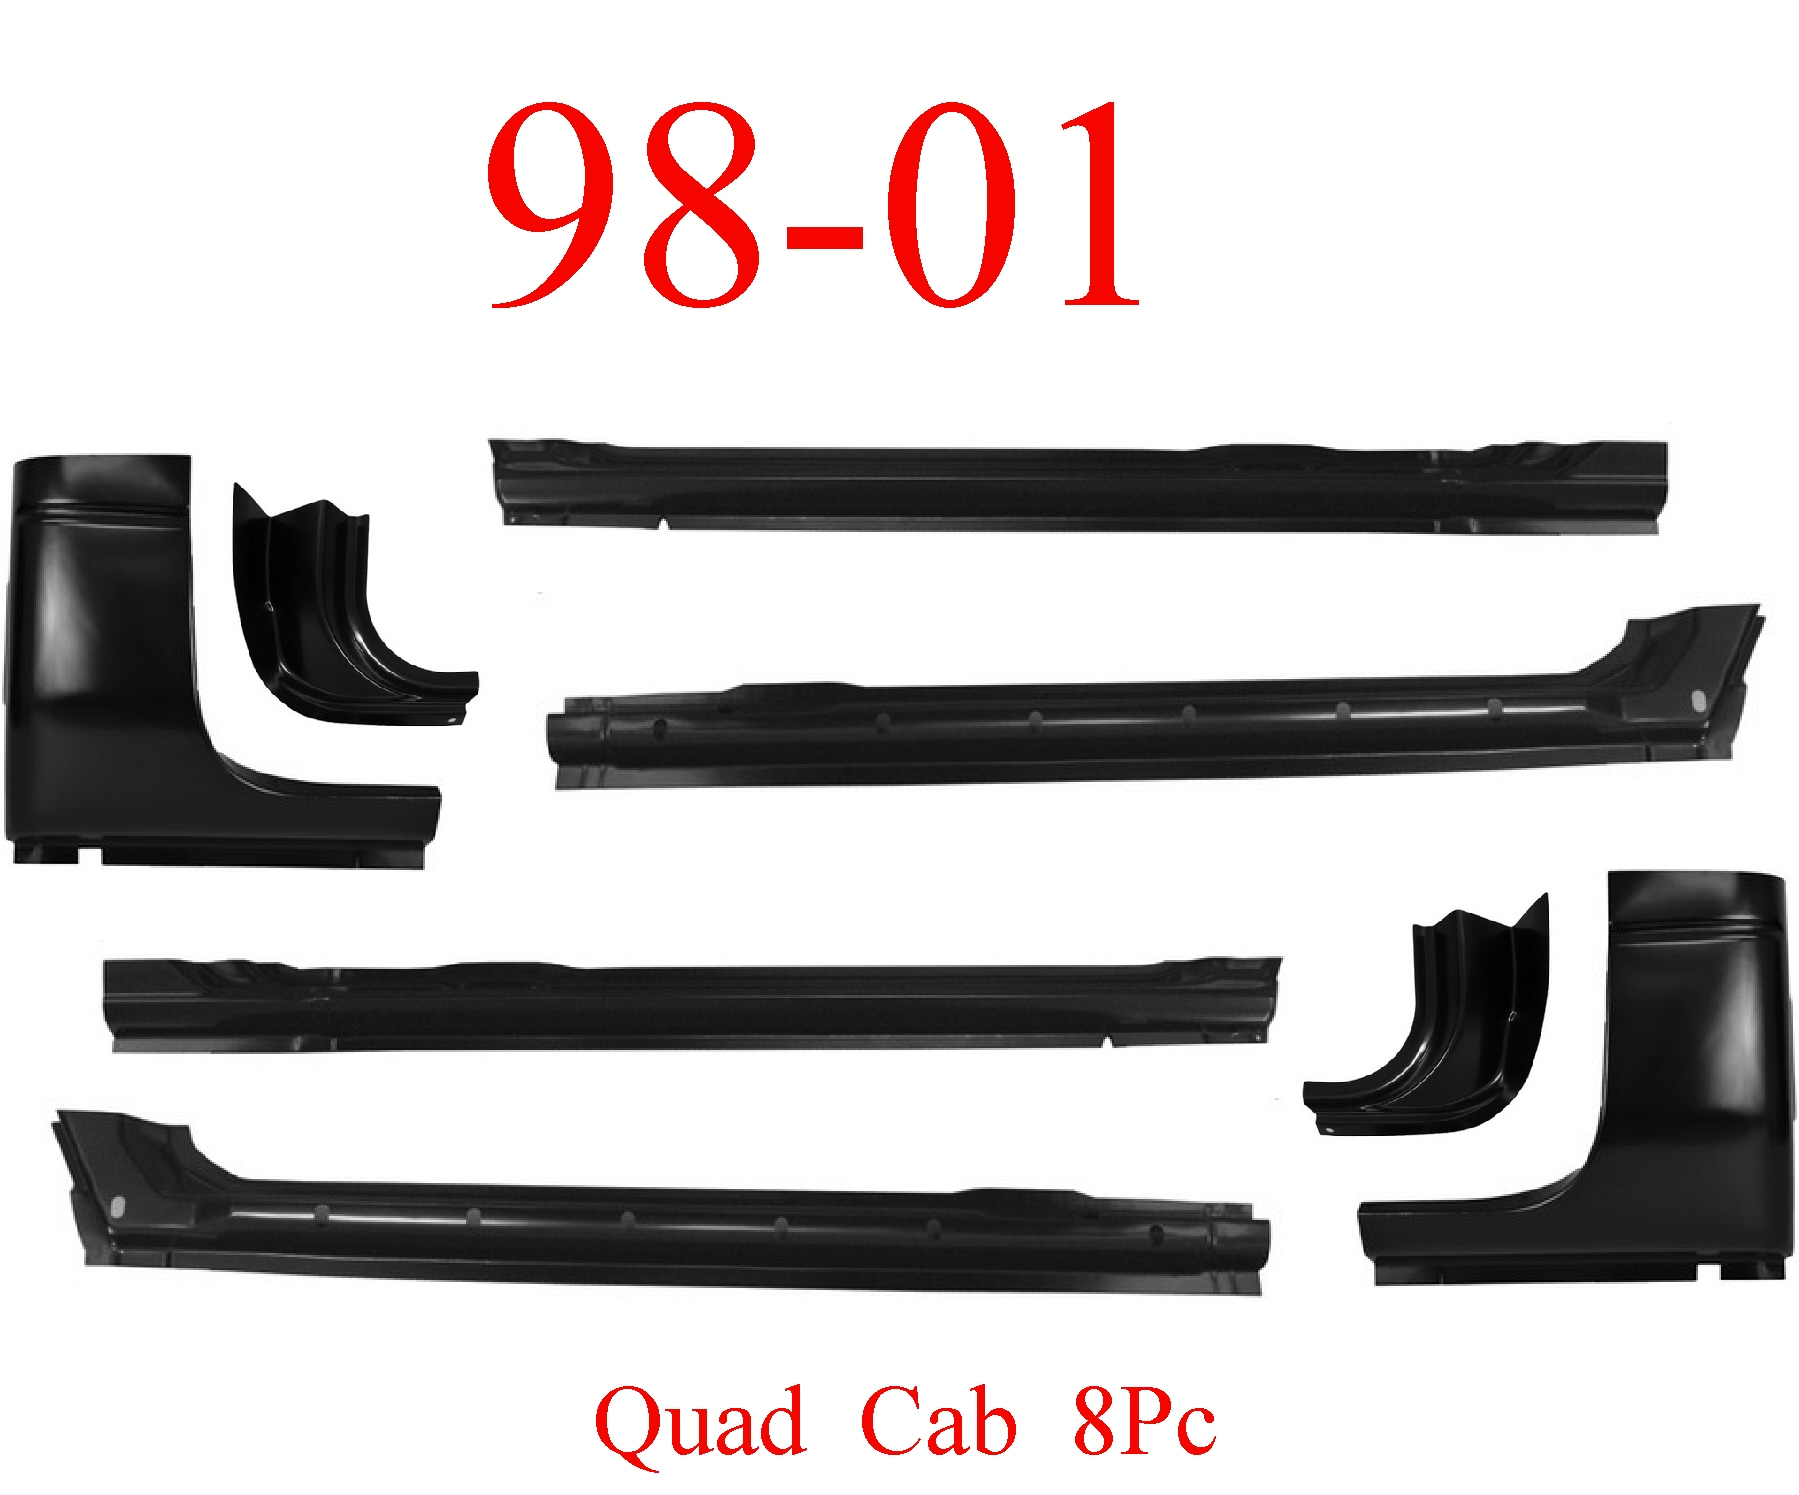 98-01 Dodge 8Pc Quad Cab Extended Rocker & Cab Corner Kit